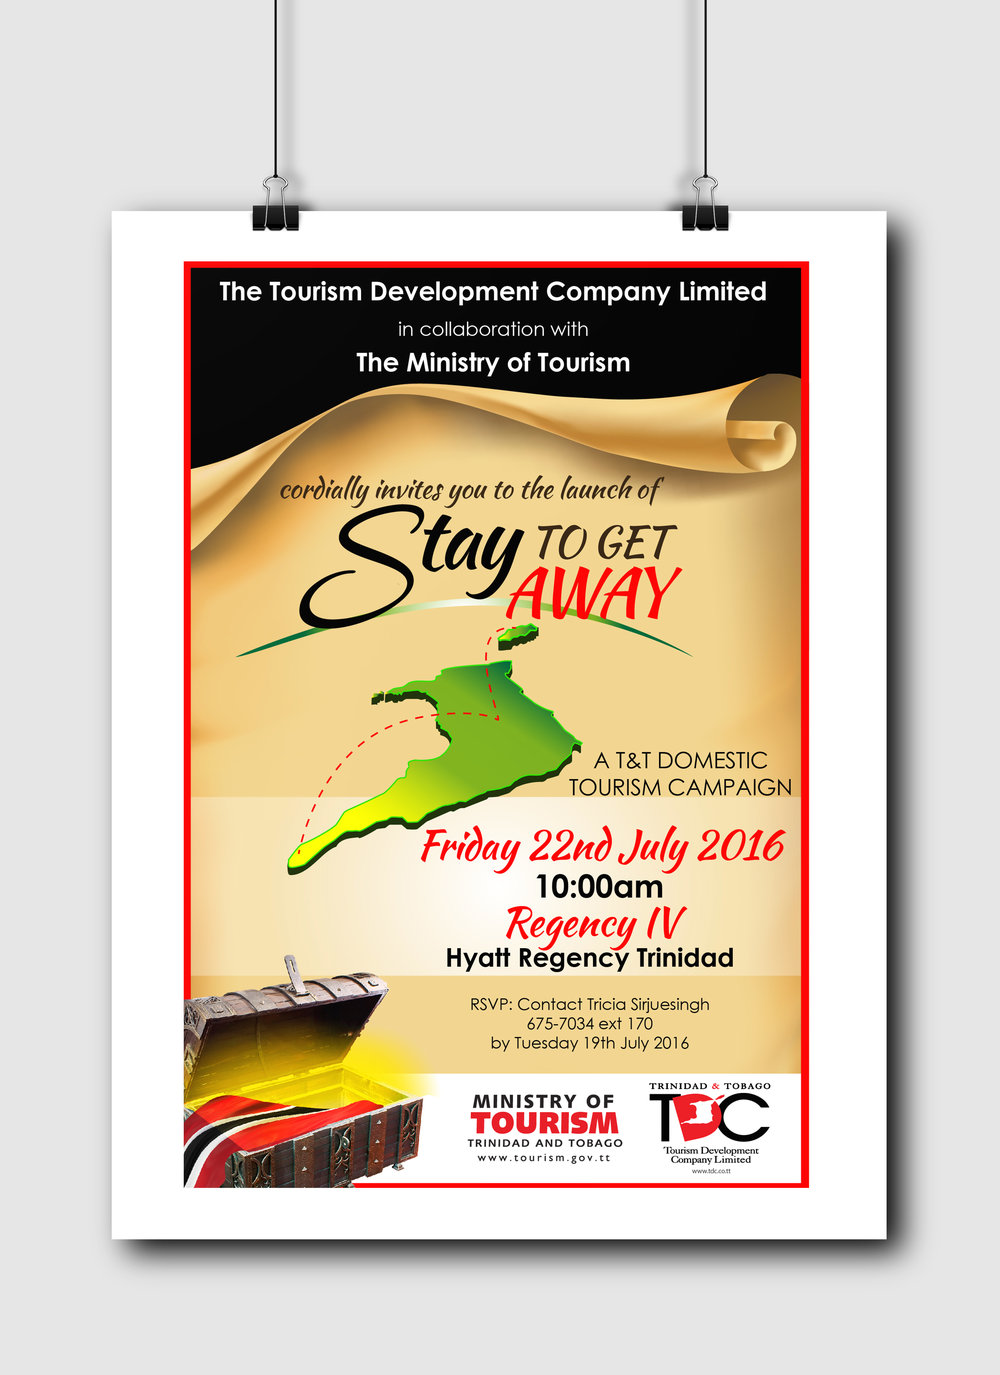 Stay to Get Away Launch Invitation - Client: The Tourism Development CompanyDescription: Design an invitation for the launch of the 2016 Stay to Get Away campaign. This design uses an